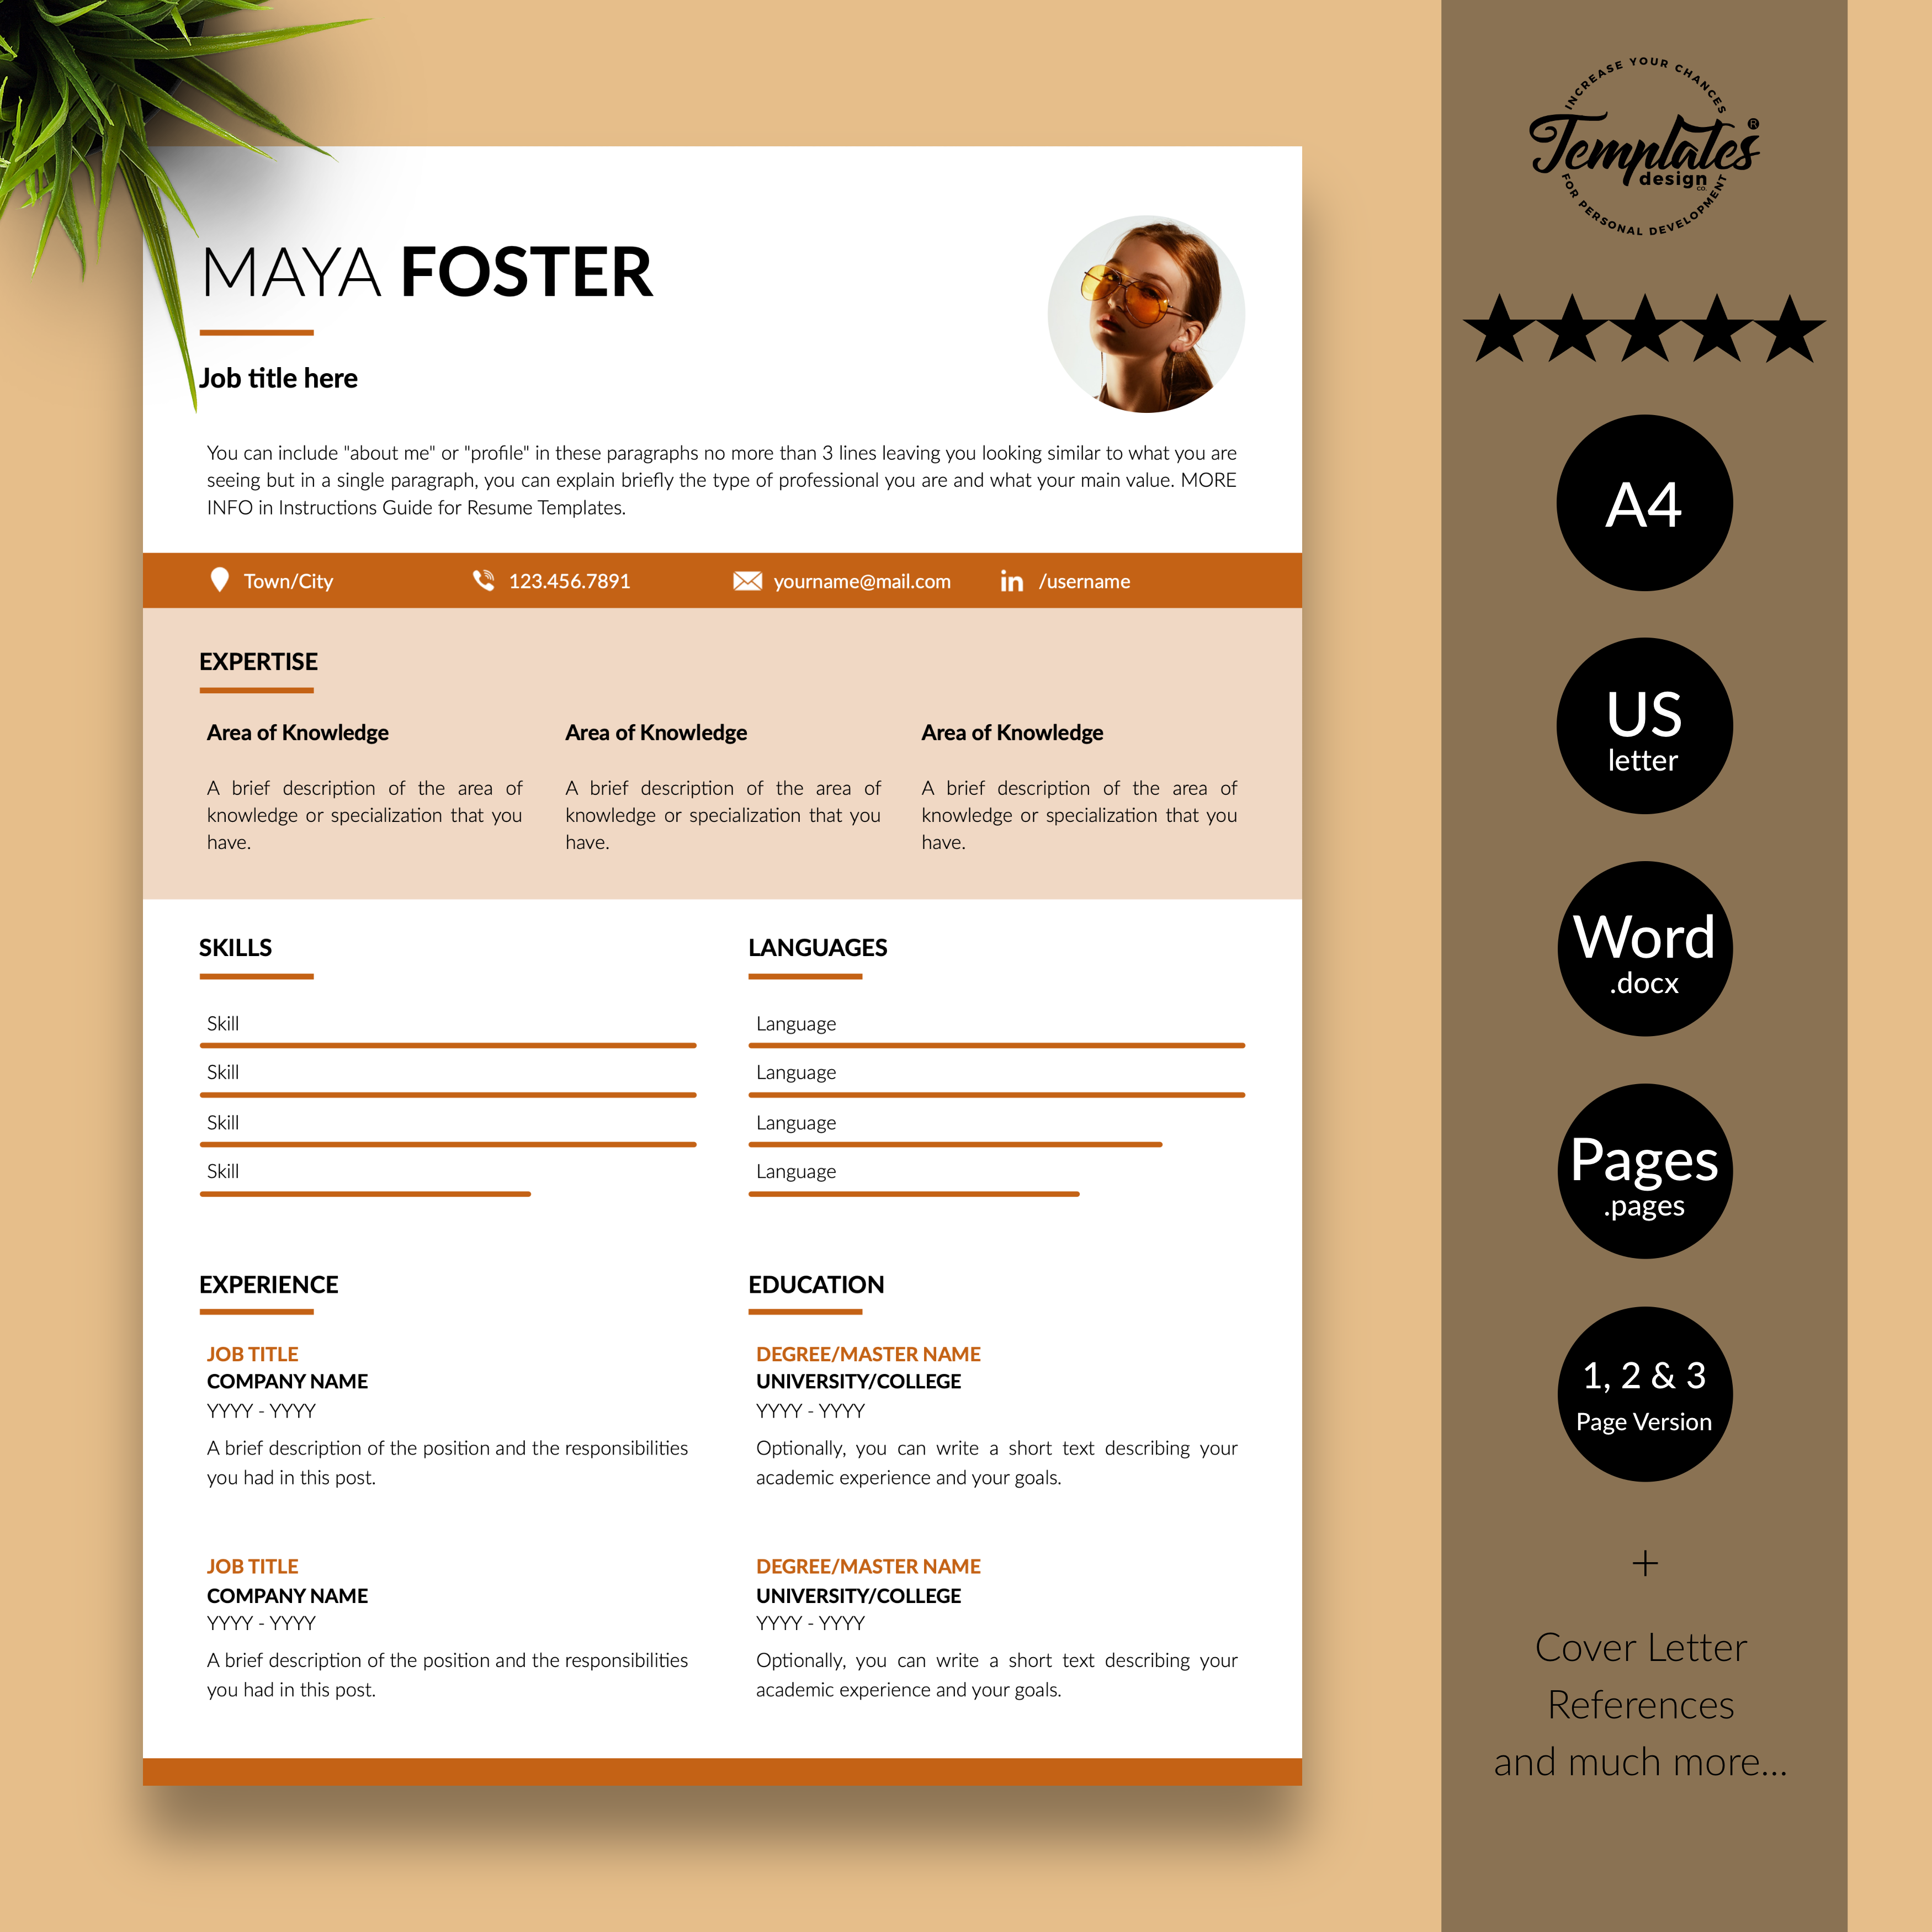 Maya Foster Modern Resume Cv Template For Word Pages Us Letter A4 Files 1 2 3 Page Resume Version Cover Letter References Cover Letter